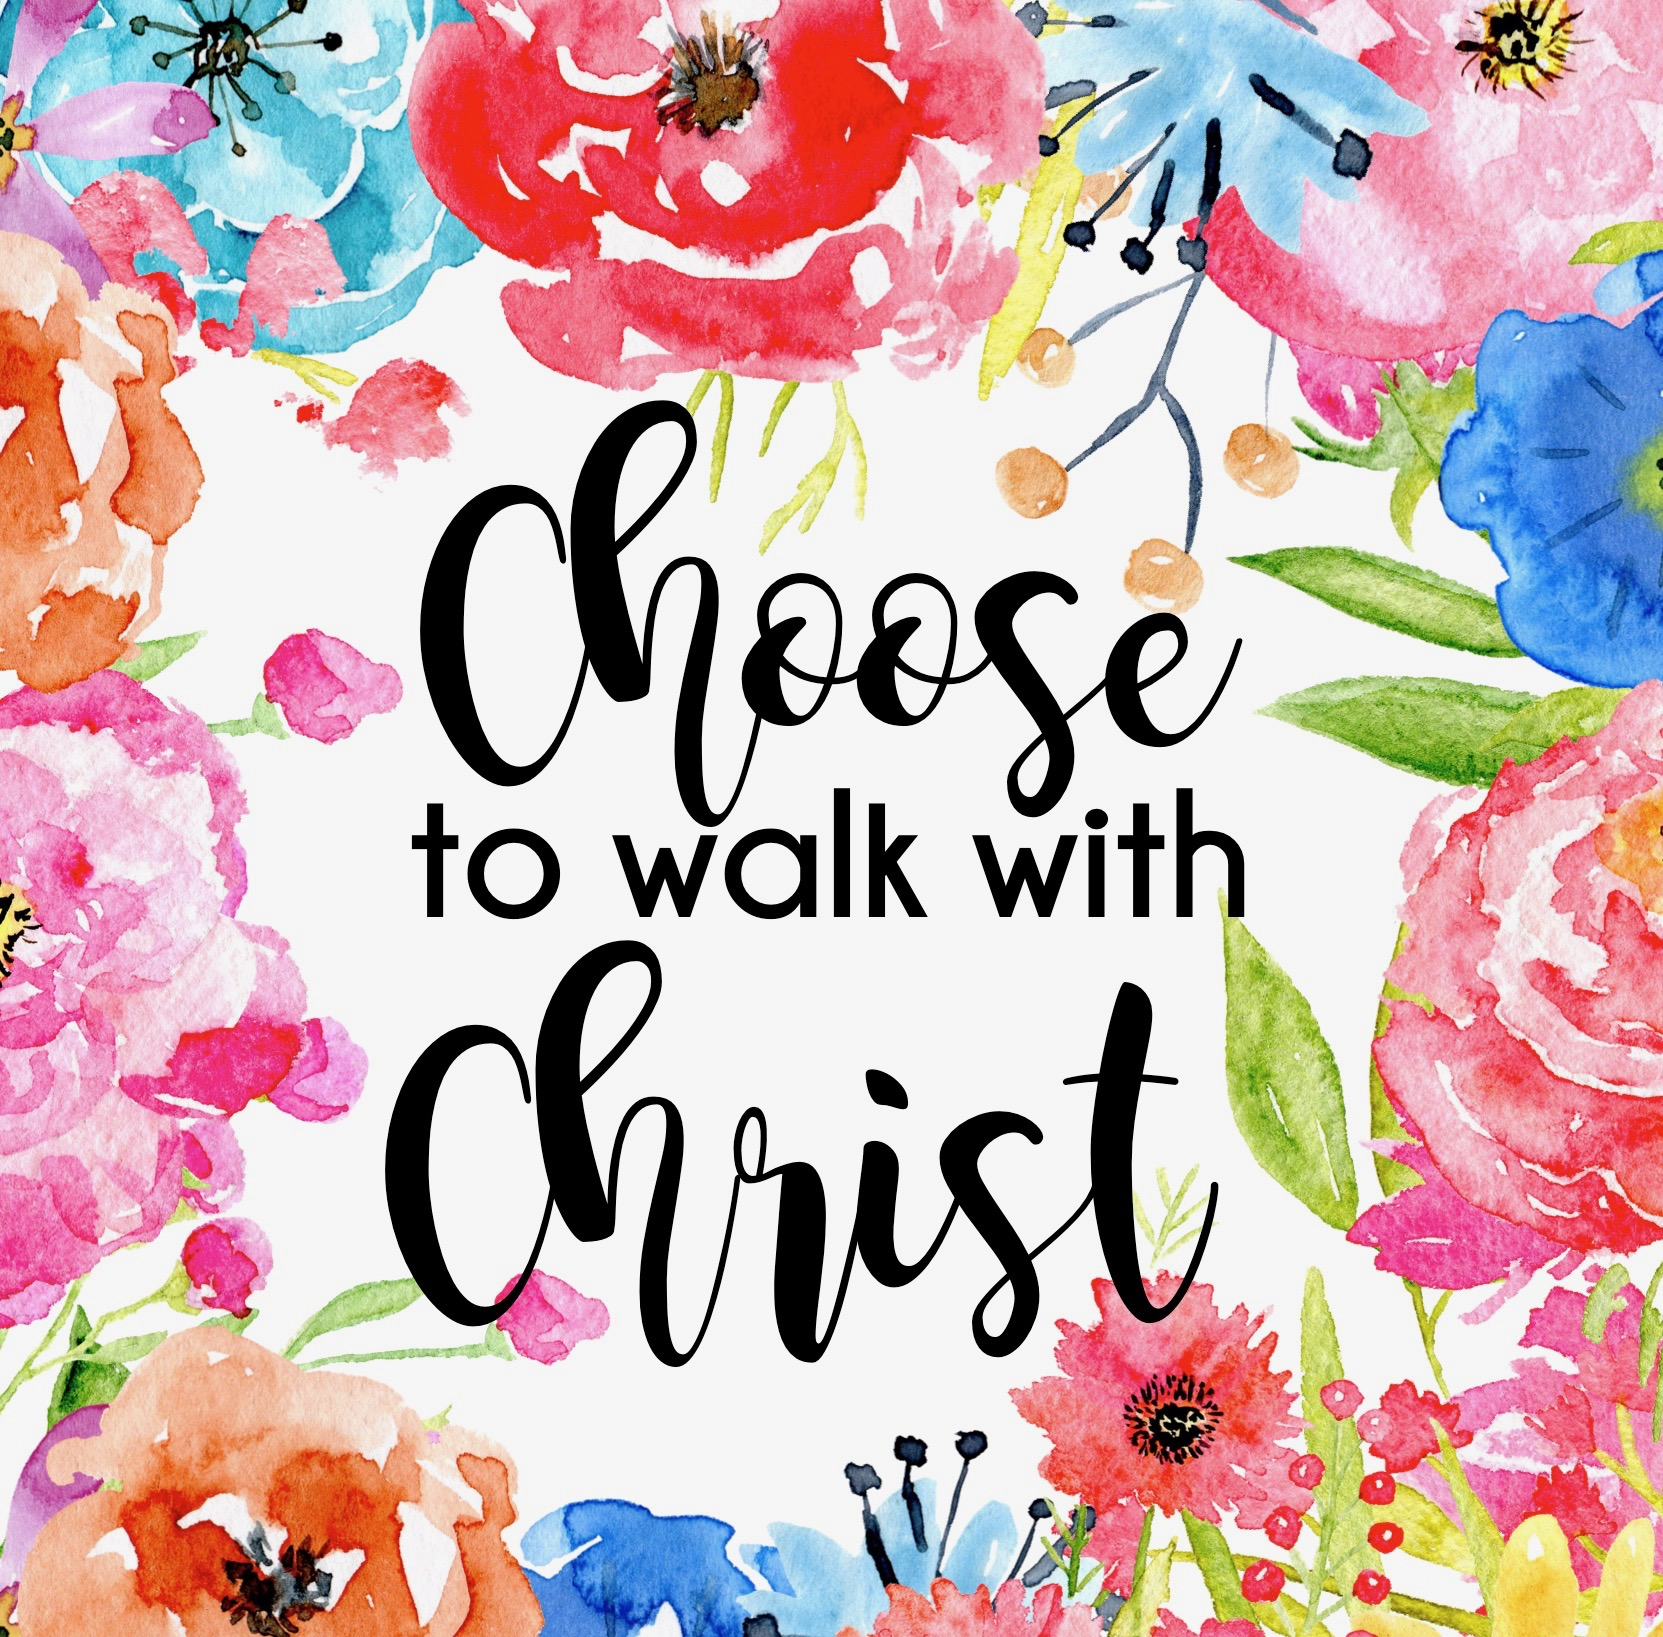 choose to walk with christ